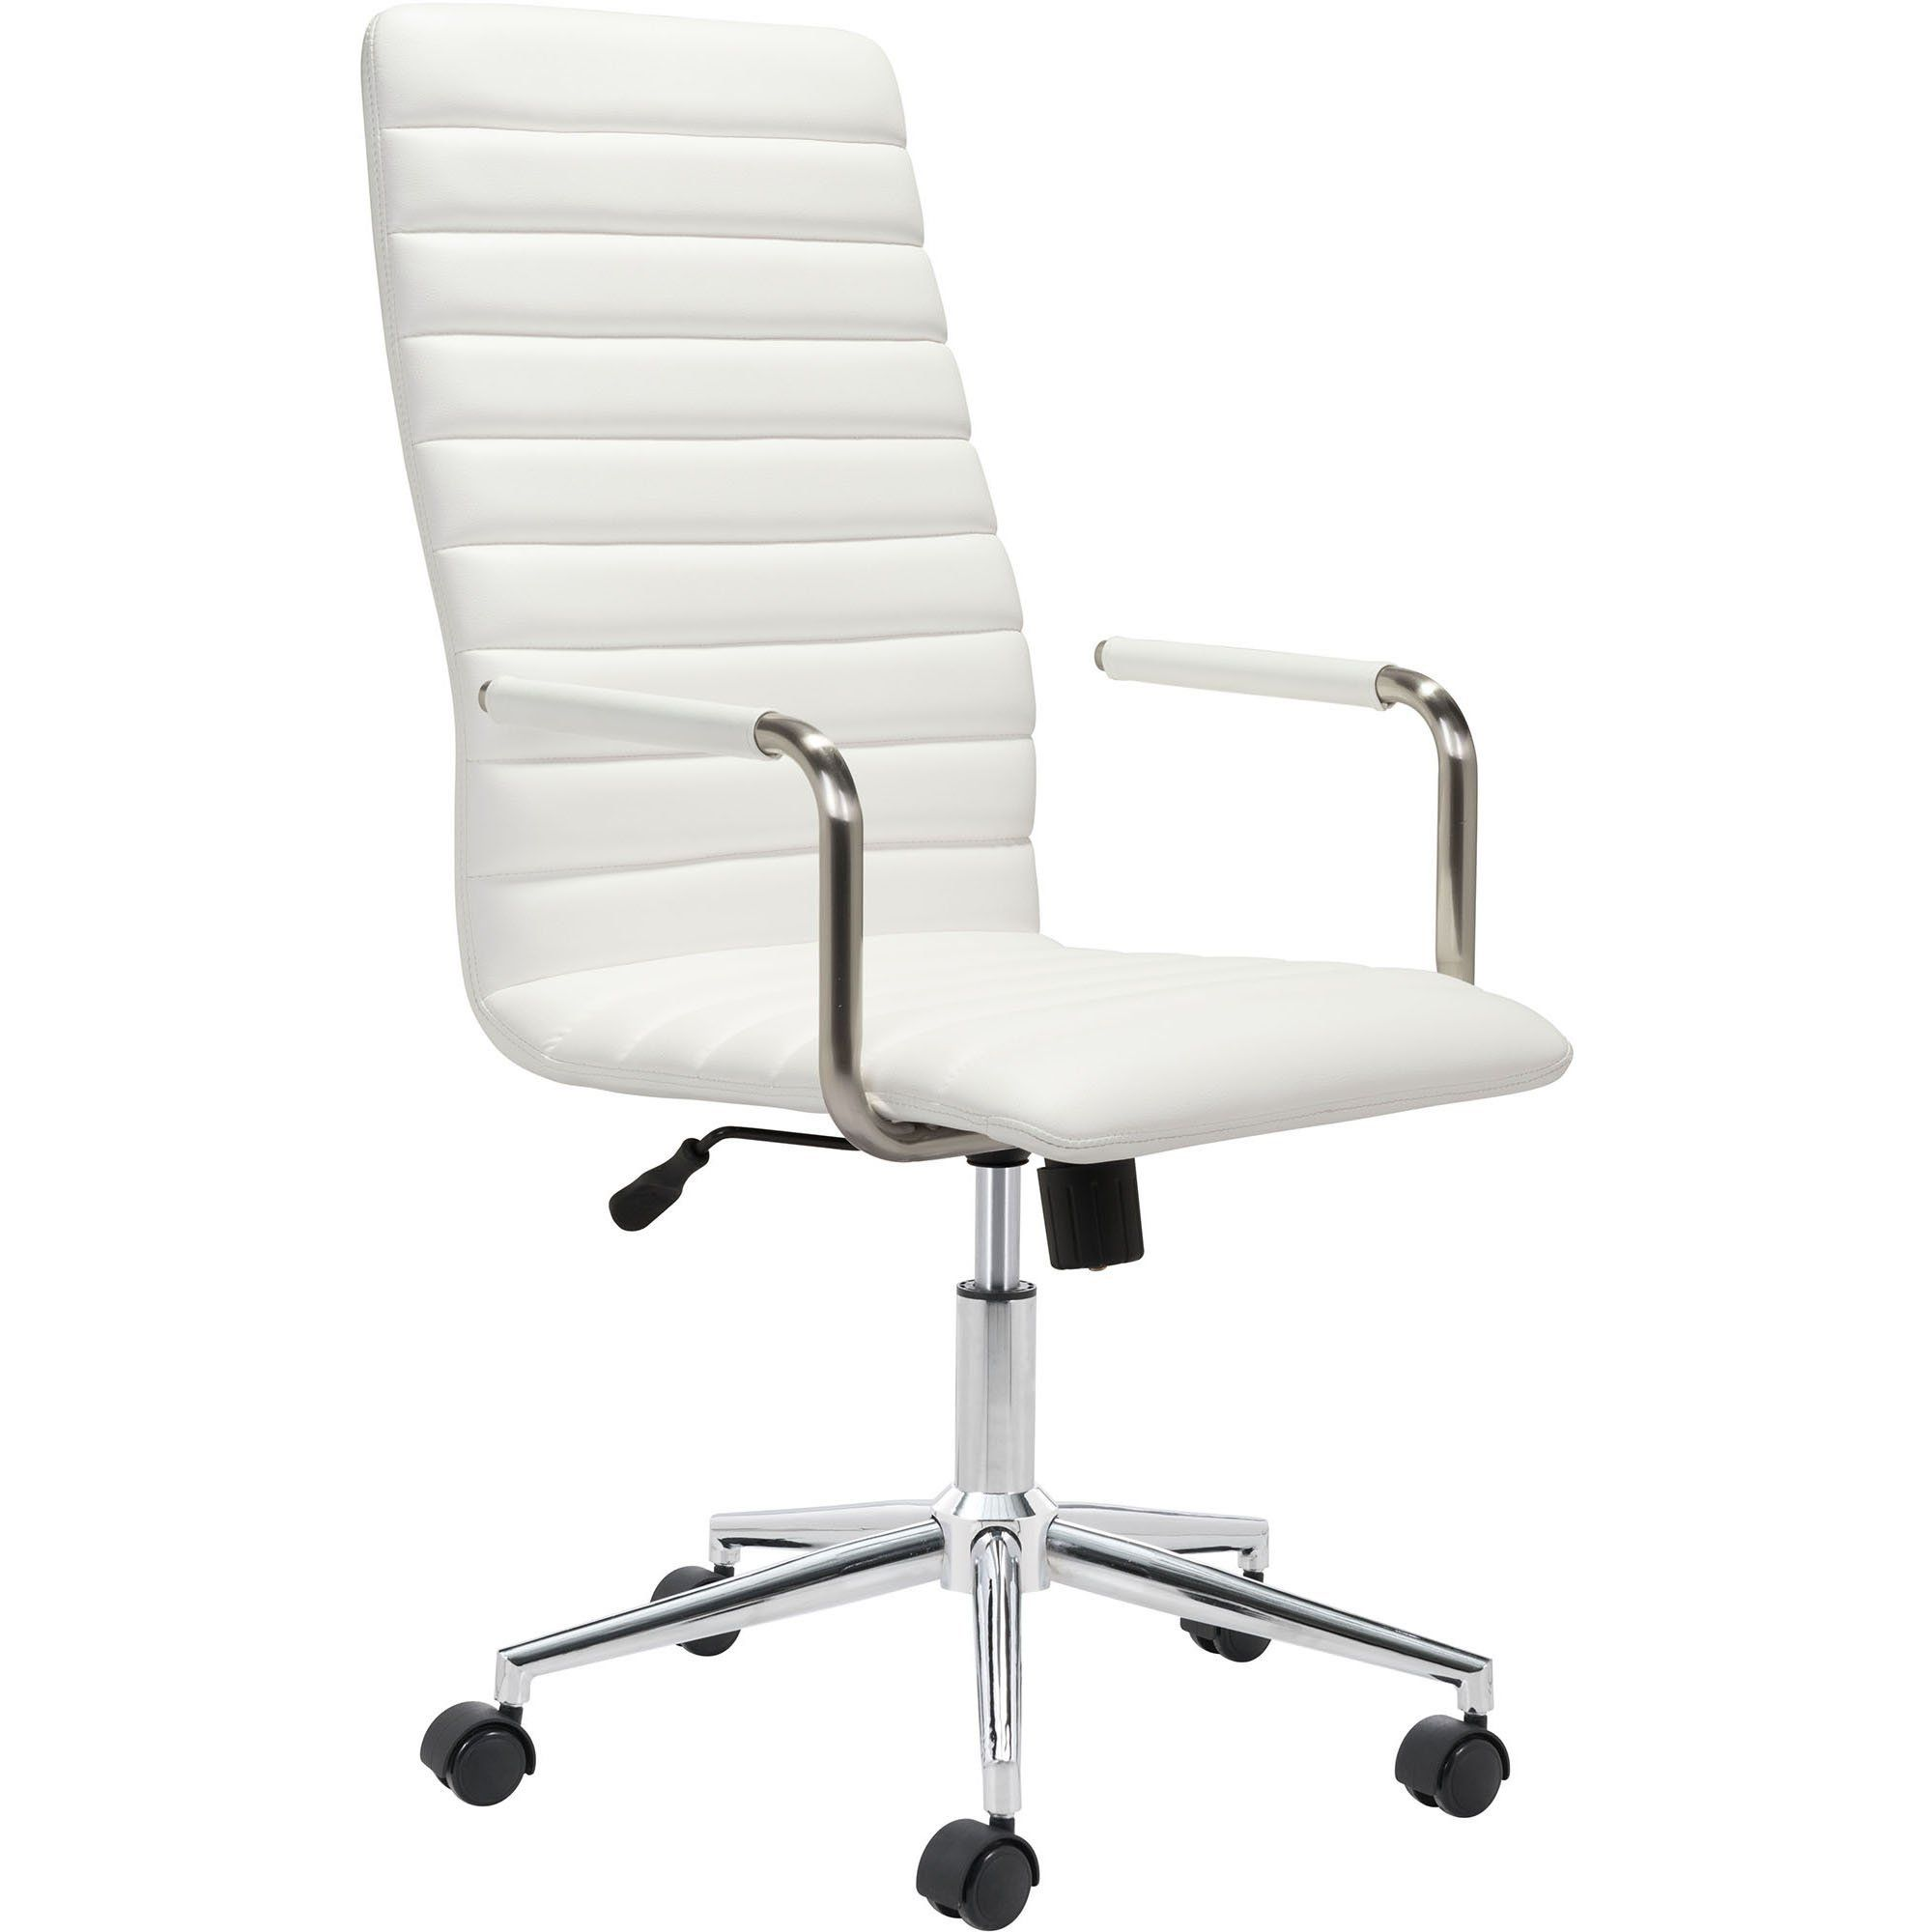 Pivot Office Chair, White